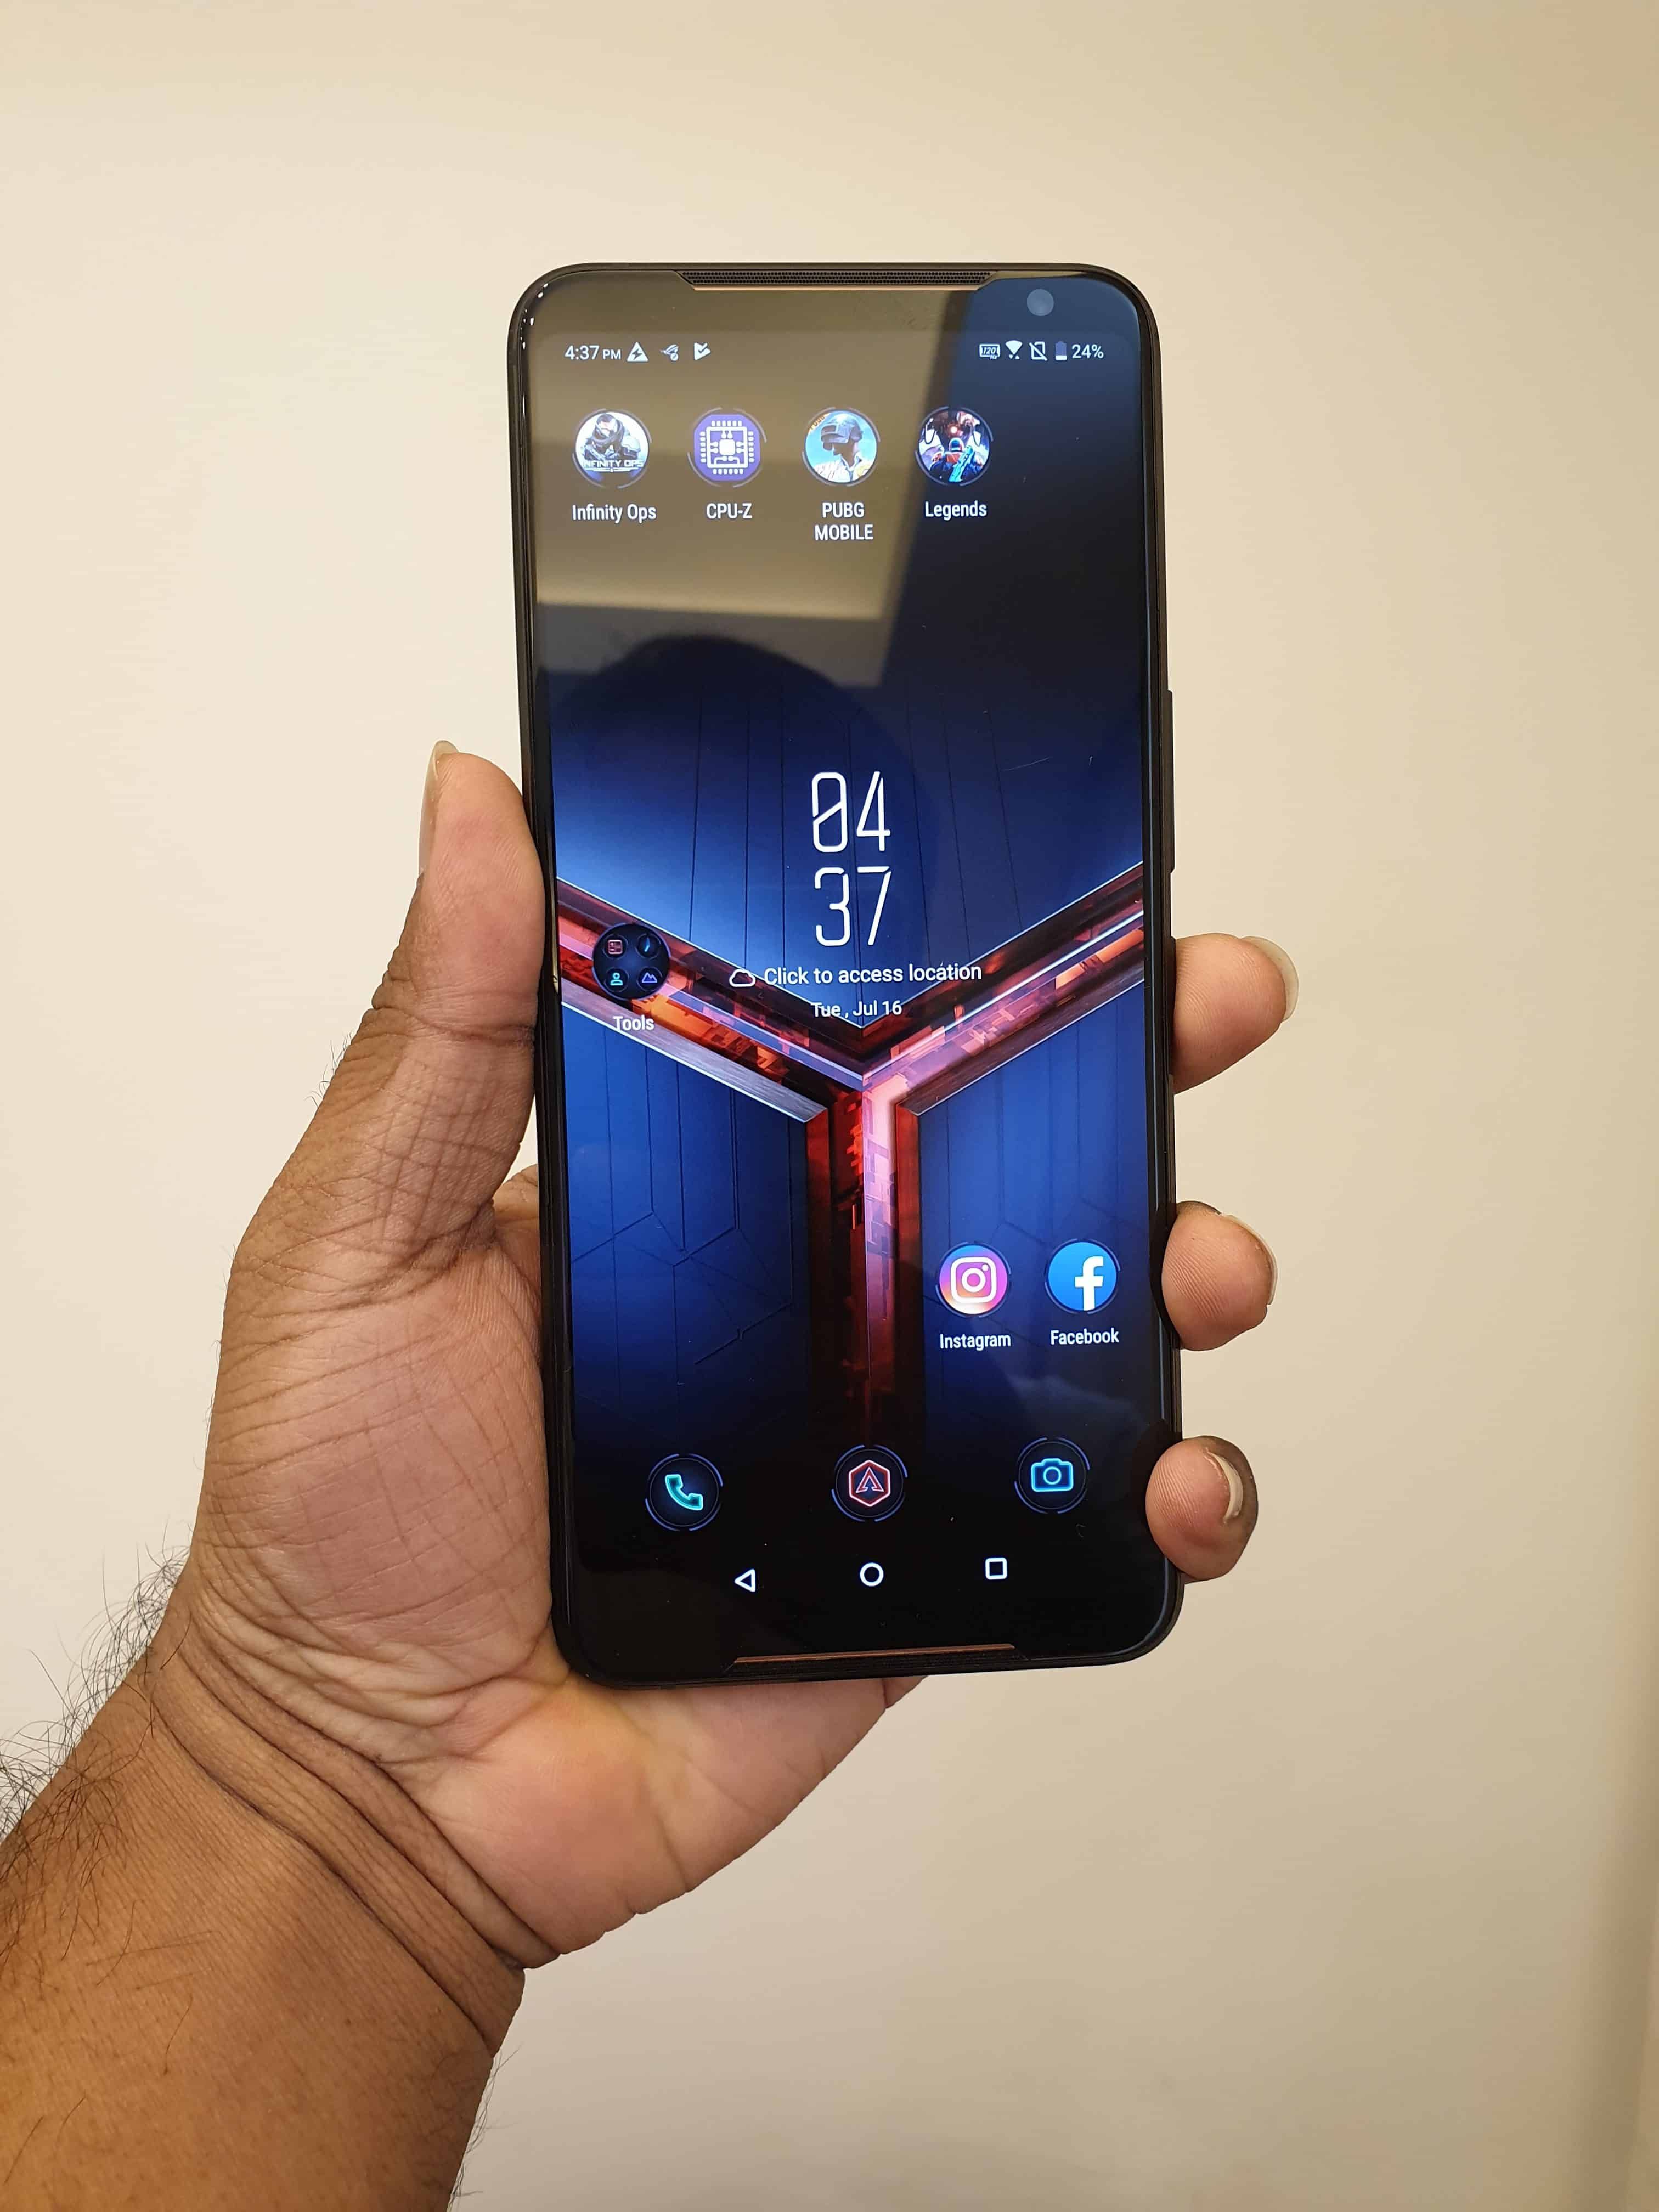 ROG Phone II Hands-on Review - My First Impressions On the Next-Gen Gaming Phone - 1